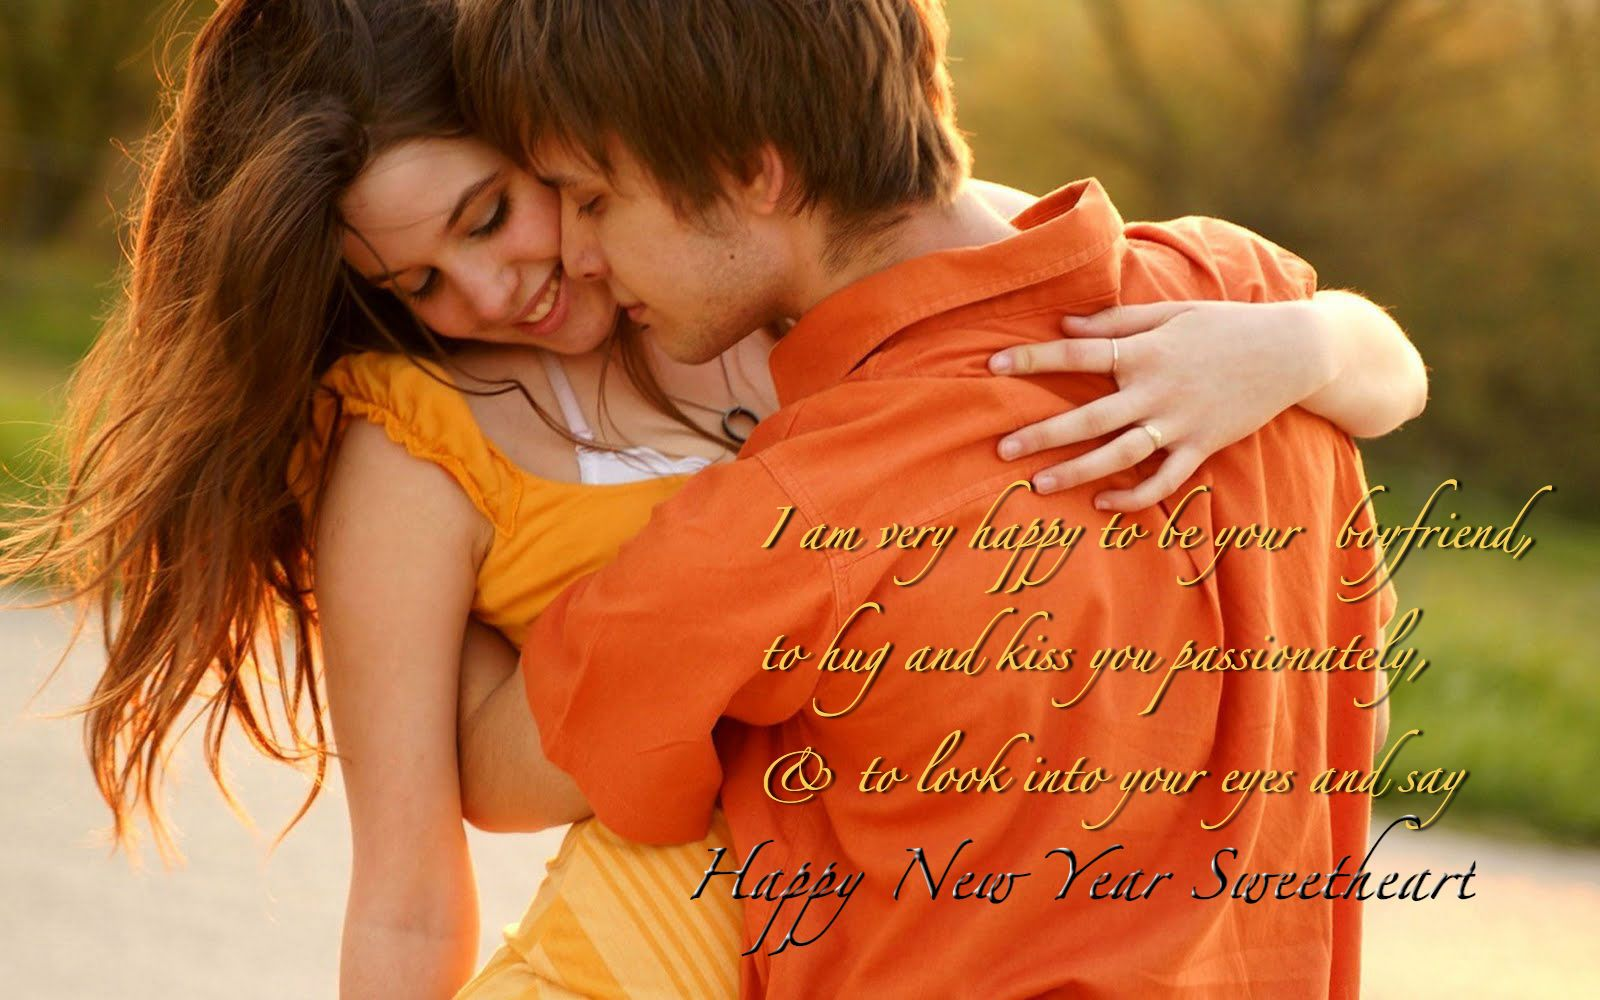 Romantic New Year Greeting Wallpaper in 2019  Love couple images